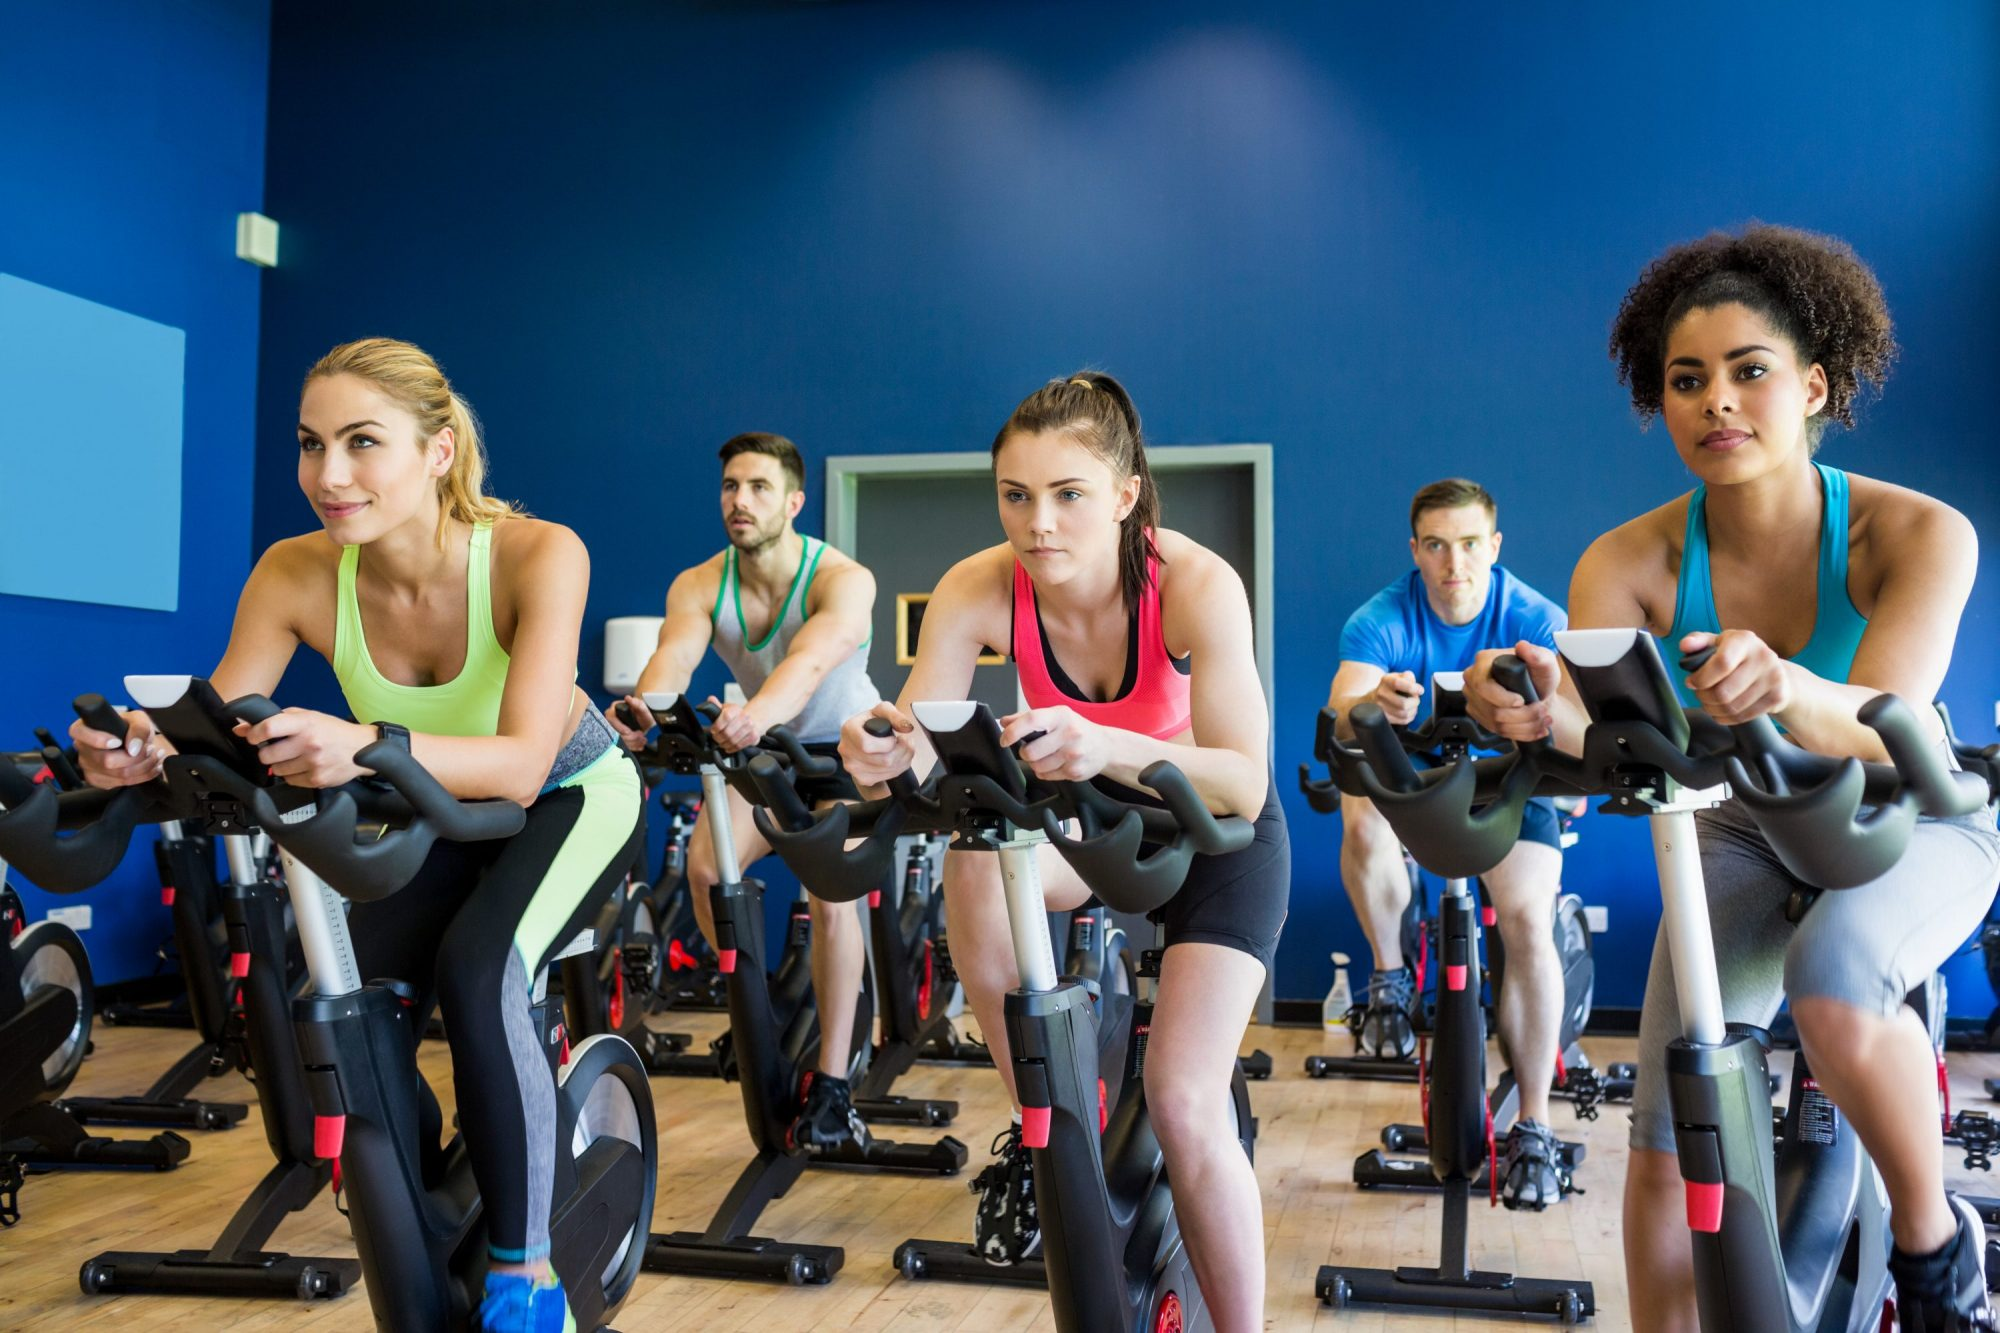 Did you know you can burn up to 600 calories in a 45 minute Avena Spin class?